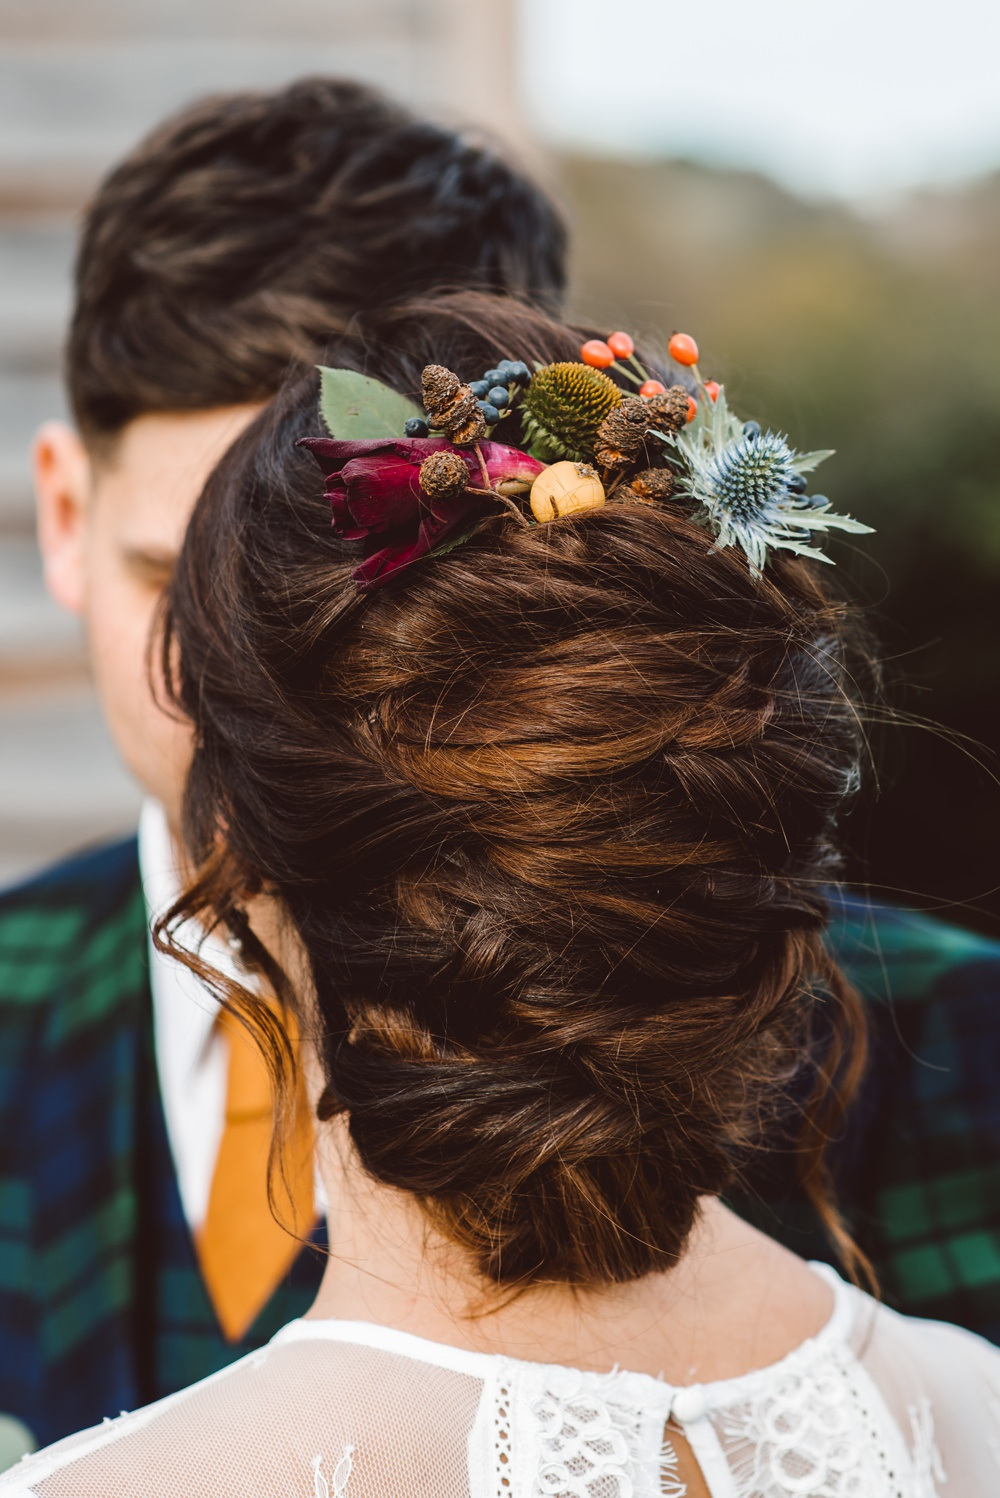 Hair Bride Bridal Up Do Flowers Style Rustic Christmas Wedding Ideas Dhw Photography